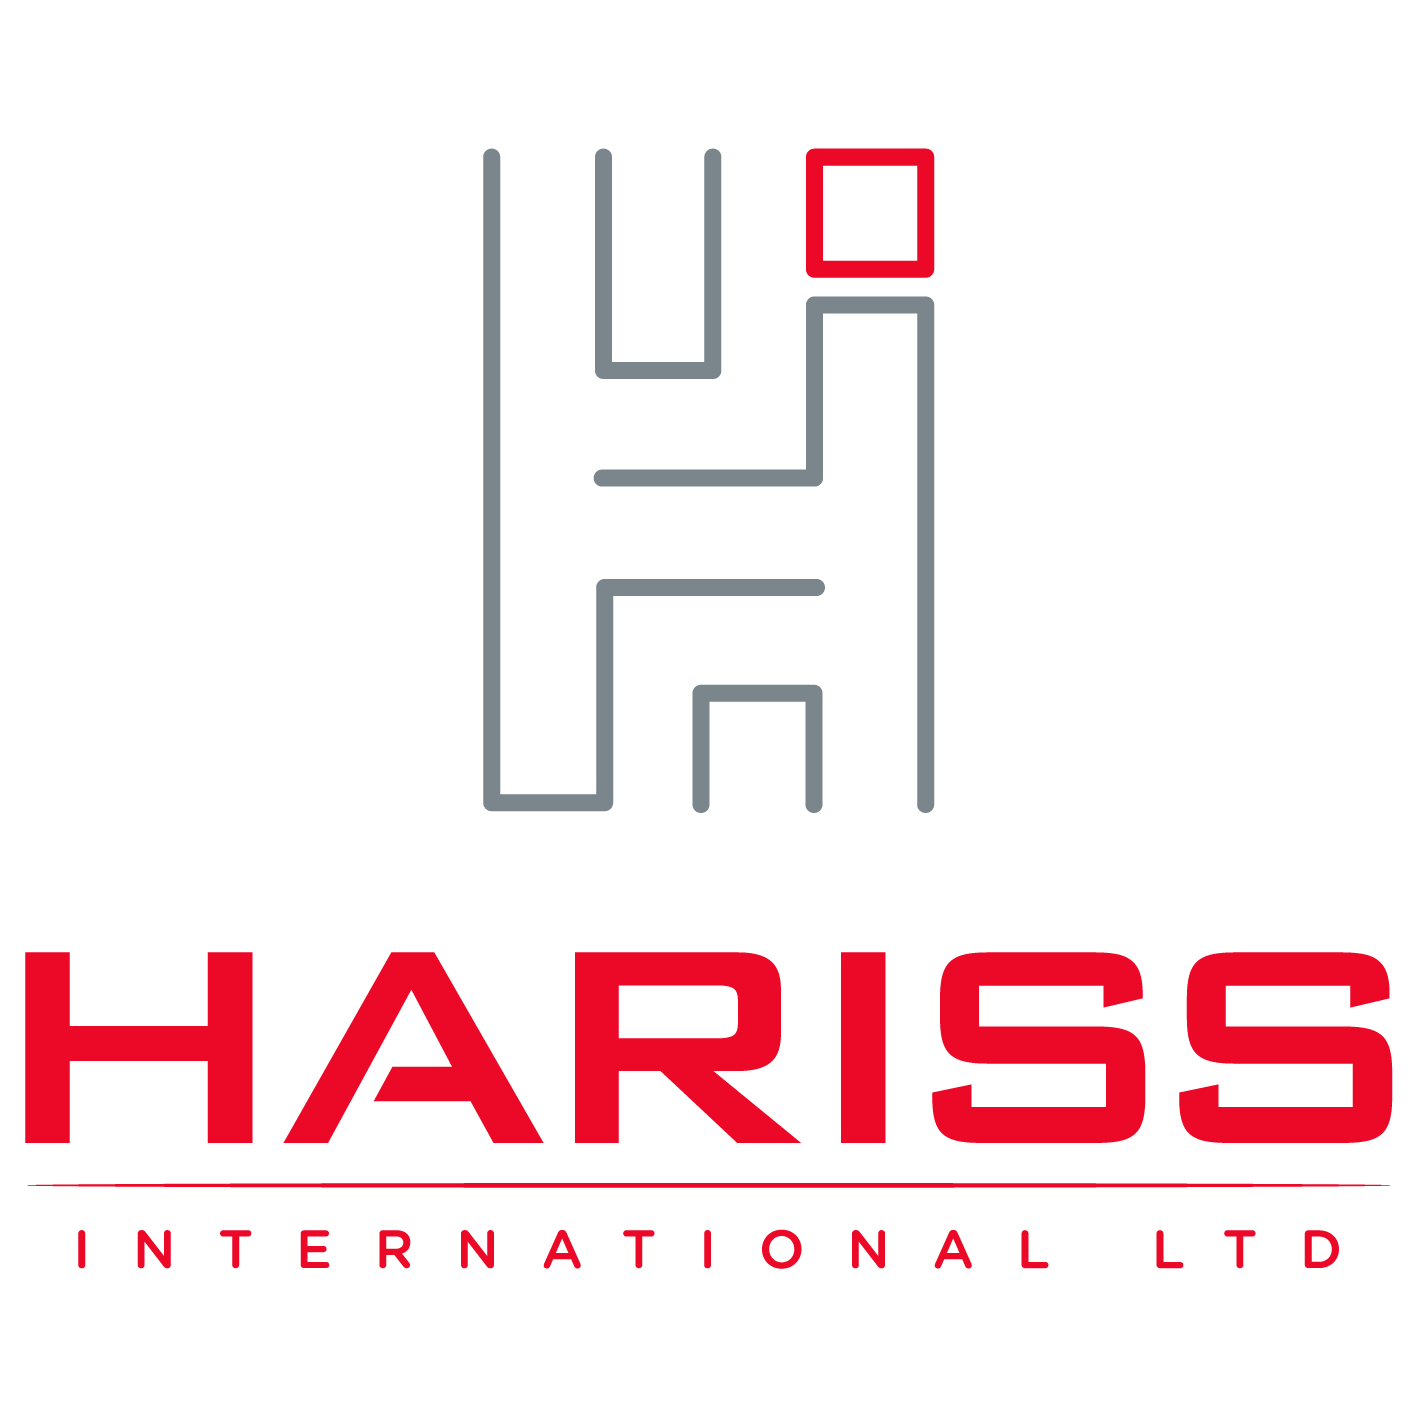 Hariss International Limited manufacturers of food and